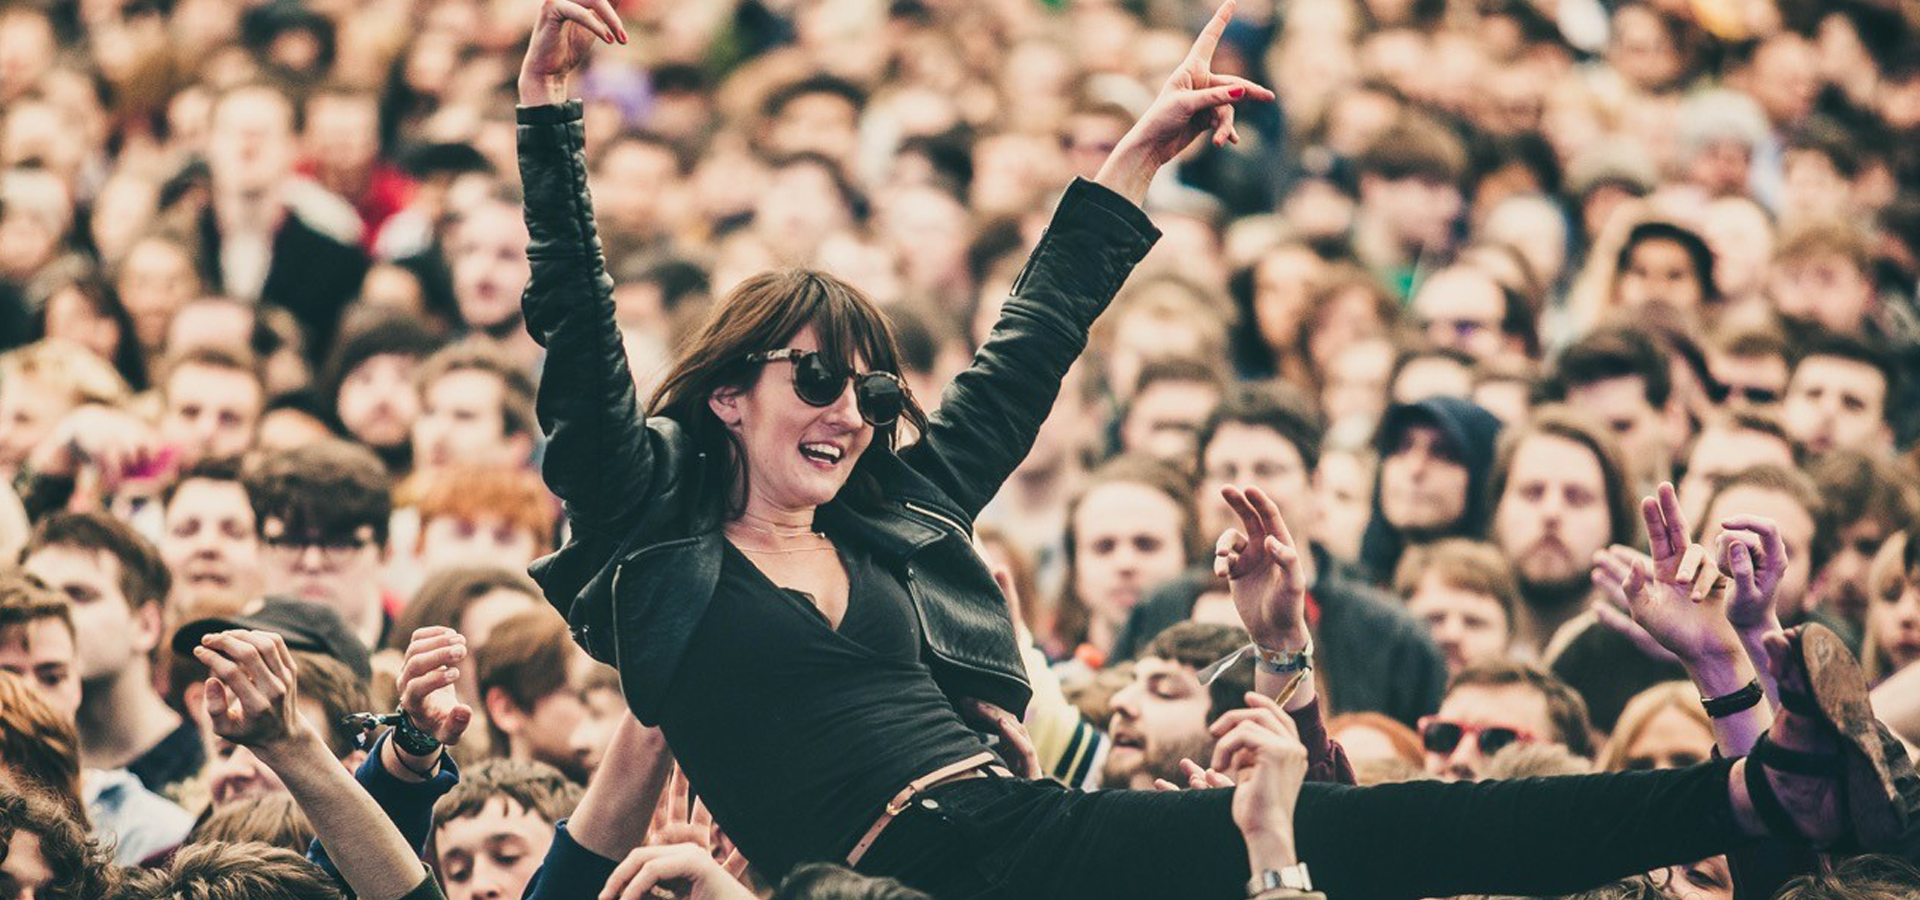 Liverpool Sound City: The best metropolitan festival